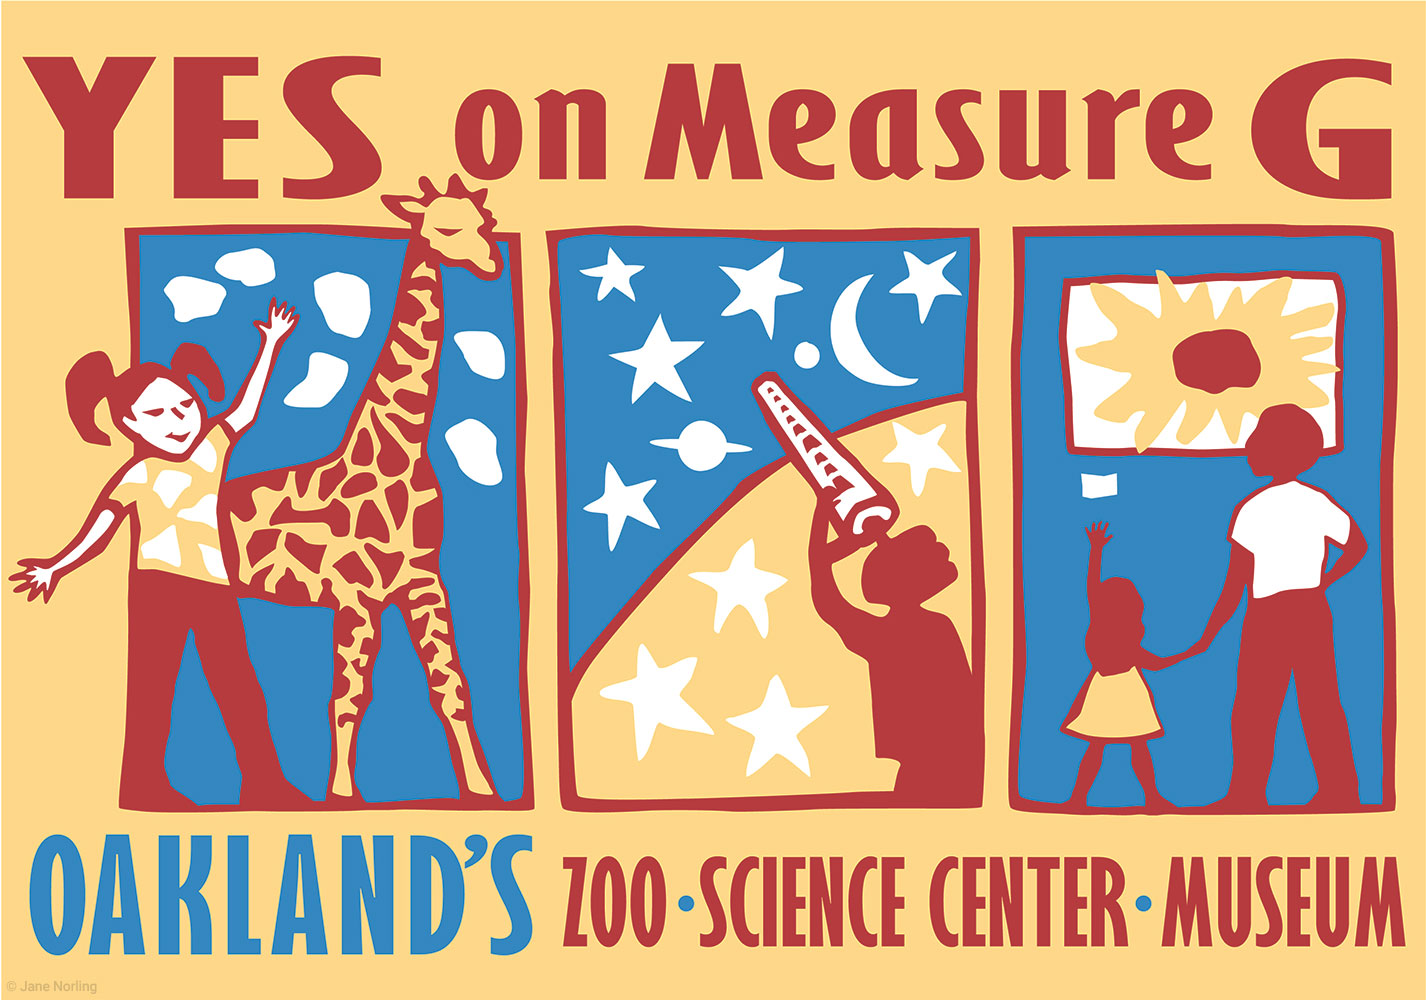 YES on Measure G, Oakland's Zoo, Science Center, Museum , campaign ID/yard sign, Oakland, California, 2001.